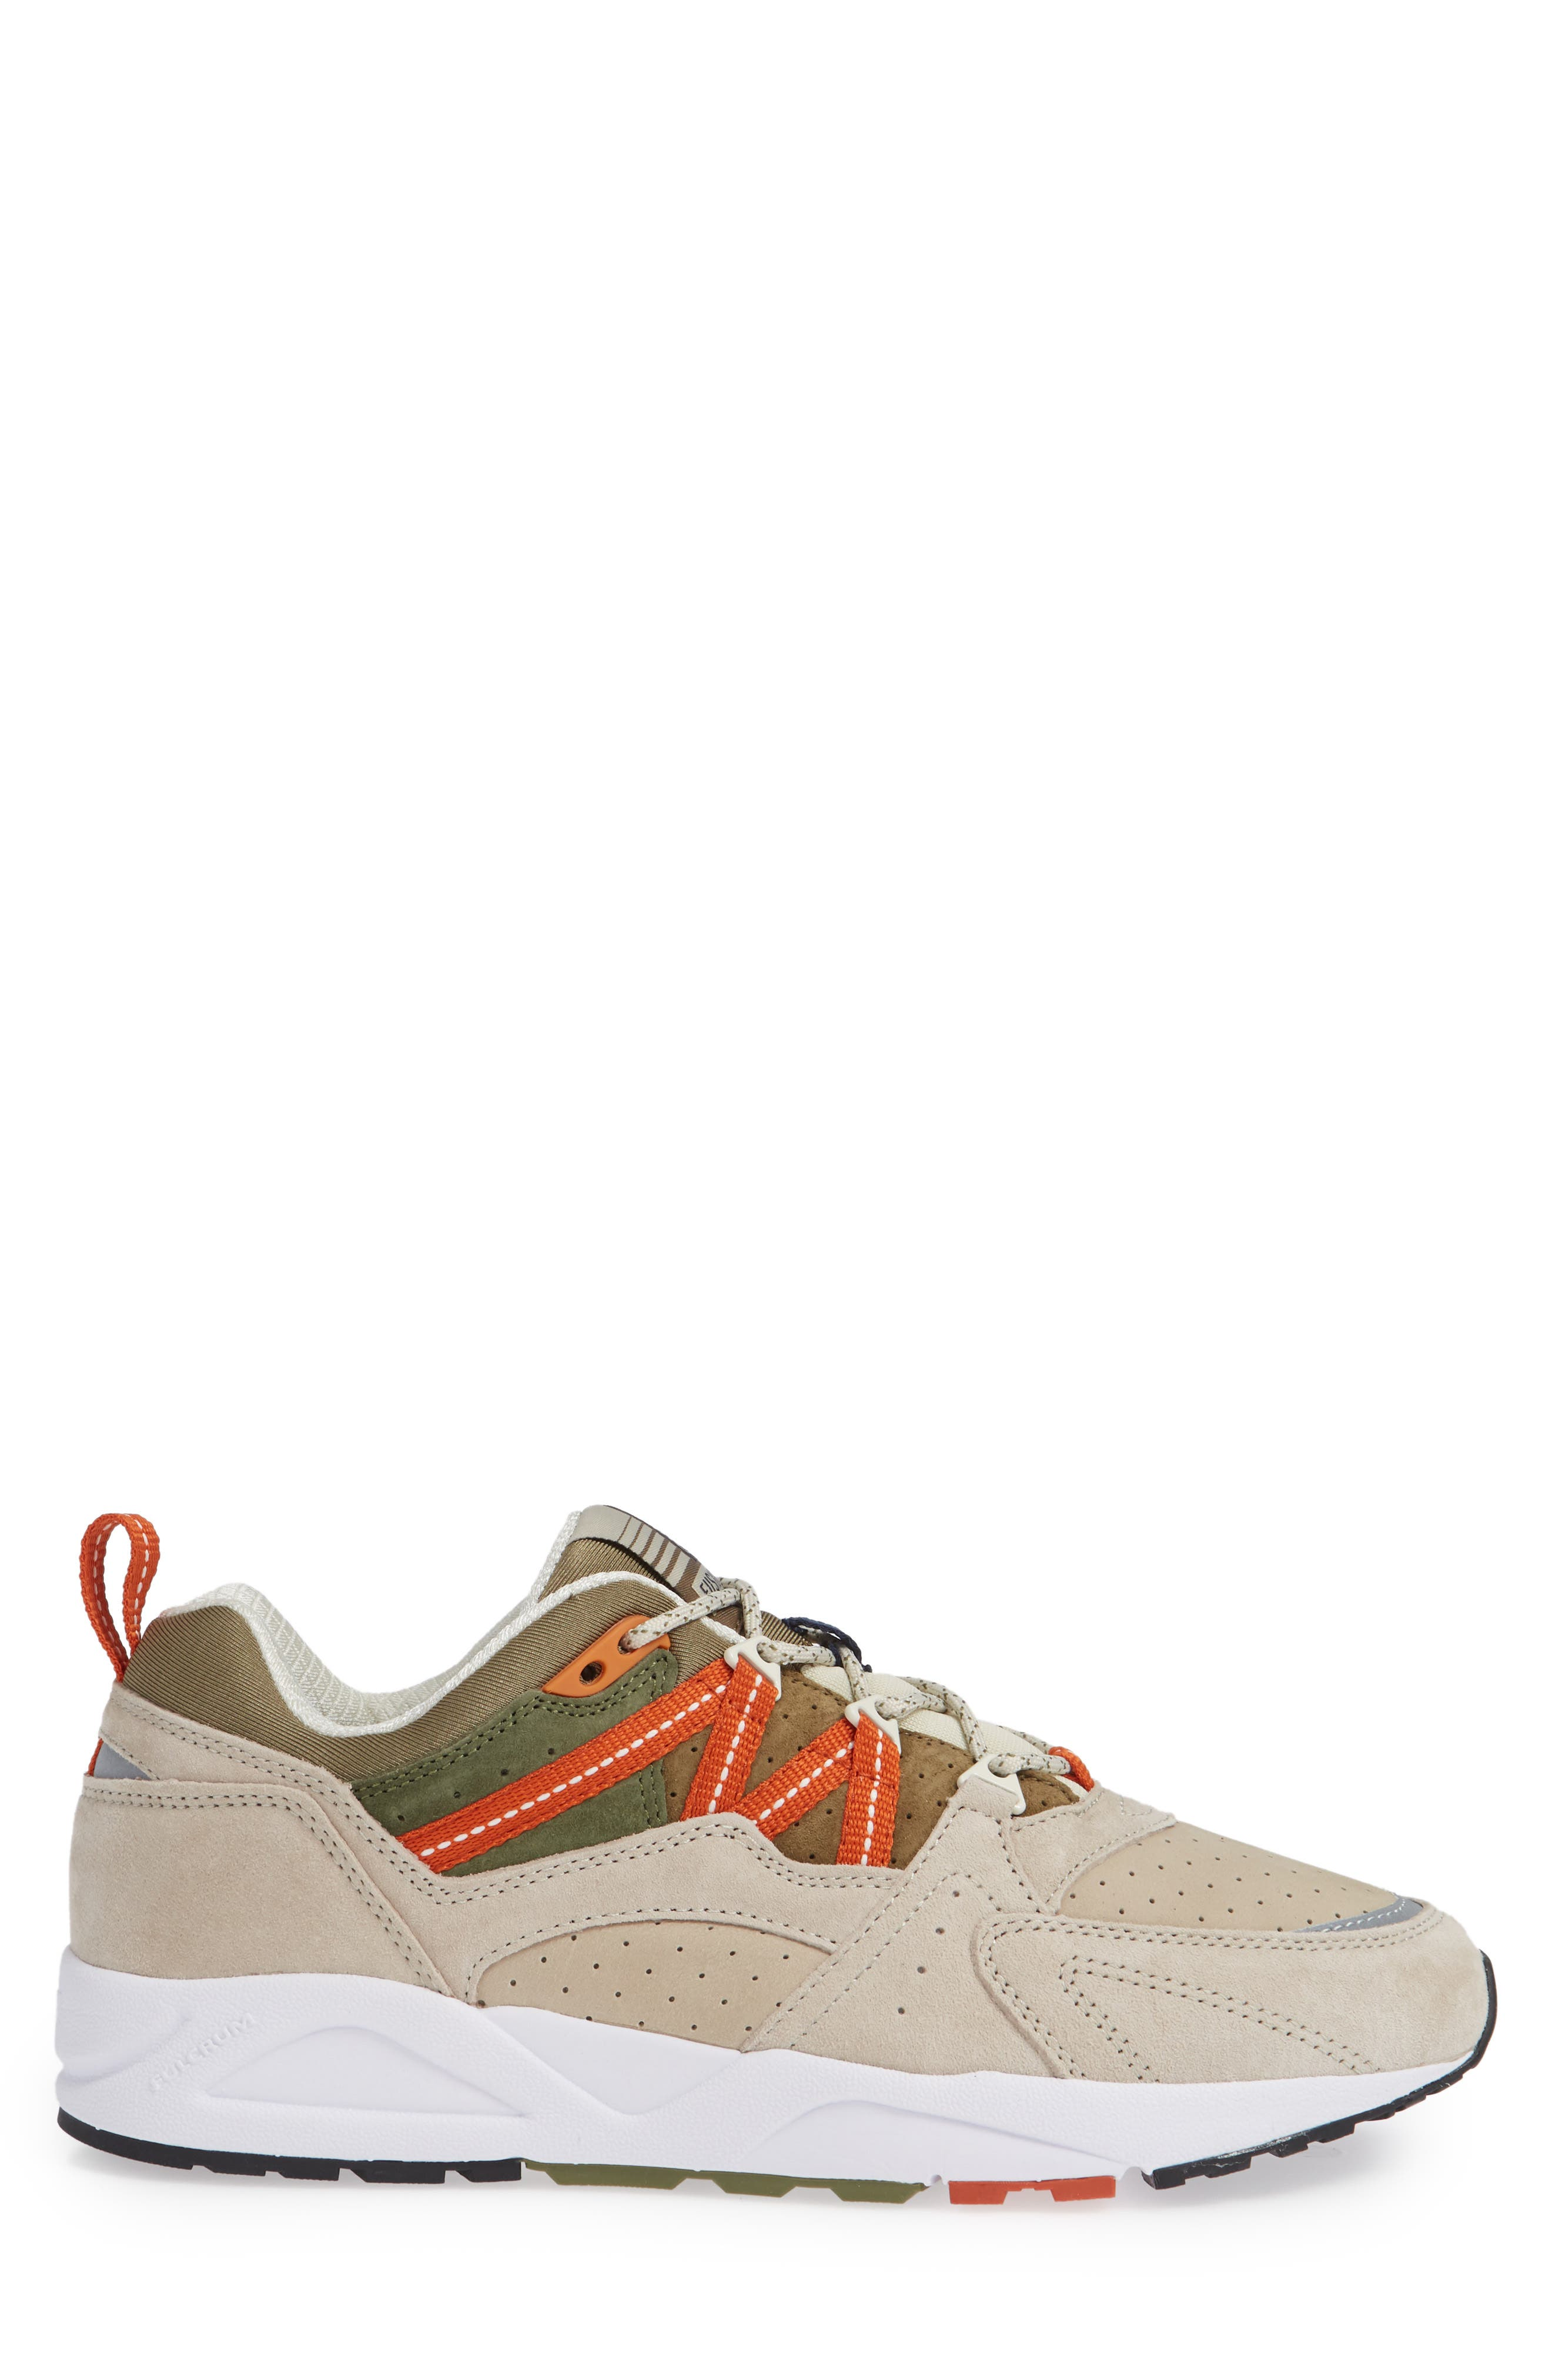 Fusion 2.0 Sneaker,                             Alternate thumbnail 3, color,                             PEYOTE / MILITARY OLIVE